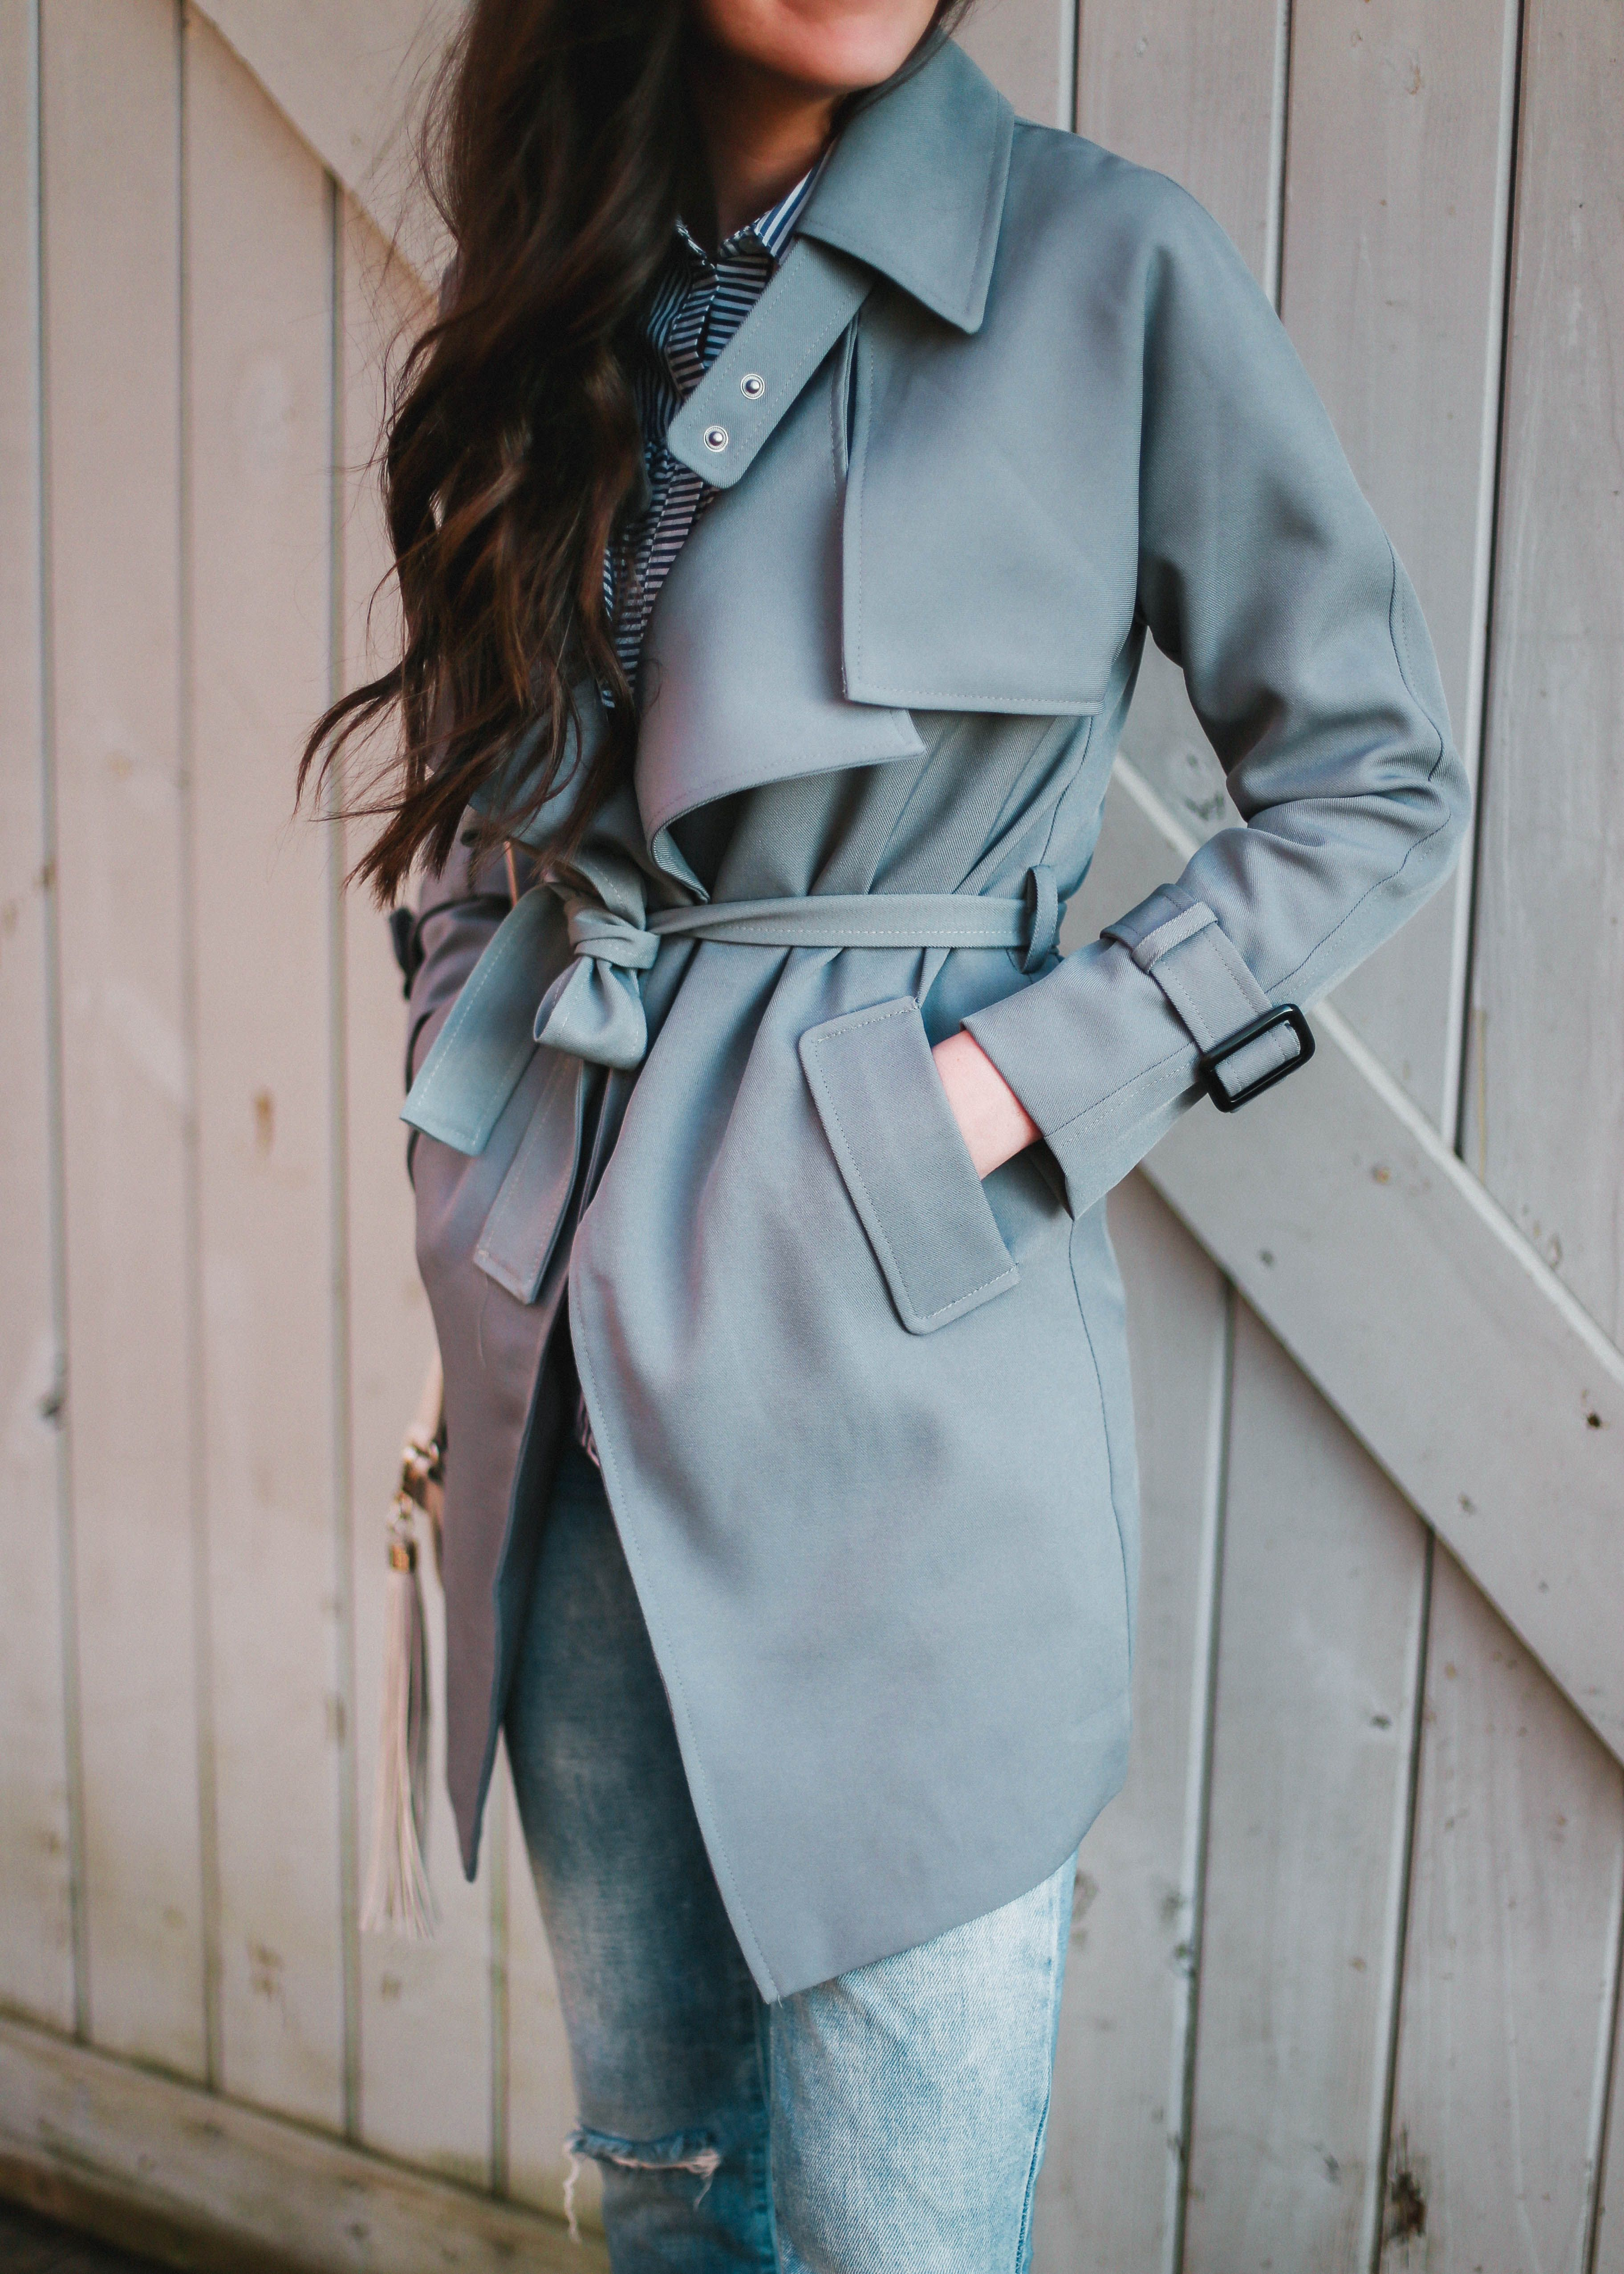 Spring Outerwear Ideas Pretty In The Pines New York City Lifestyle Blog Spring Outerwear Trench Coats Women Spring Outerwear Women [ 5107 x 3648 Pixel ]